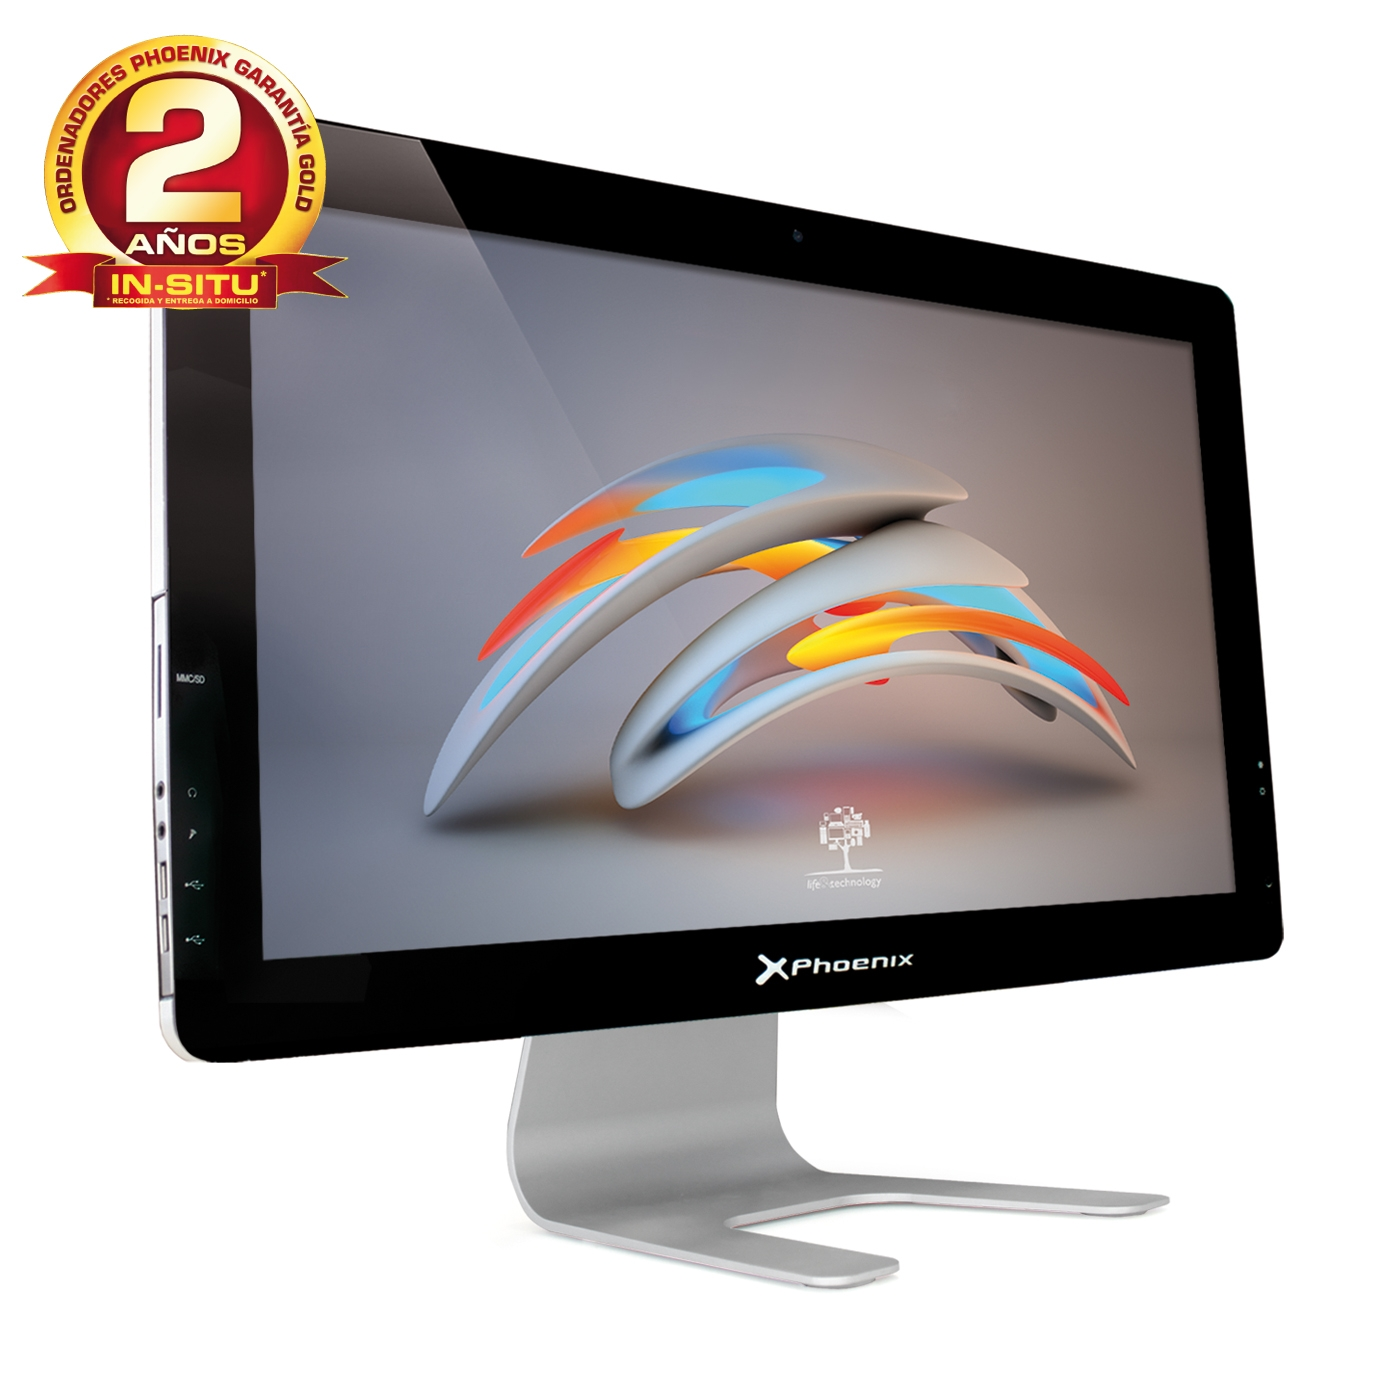 "ORDENADOR SOBREMESA PHOENIX ALL IN ONE CONSTELLATION1 LED 21.5"" WIFI  INTEL I3 DDR3 4GB 500GB RW"